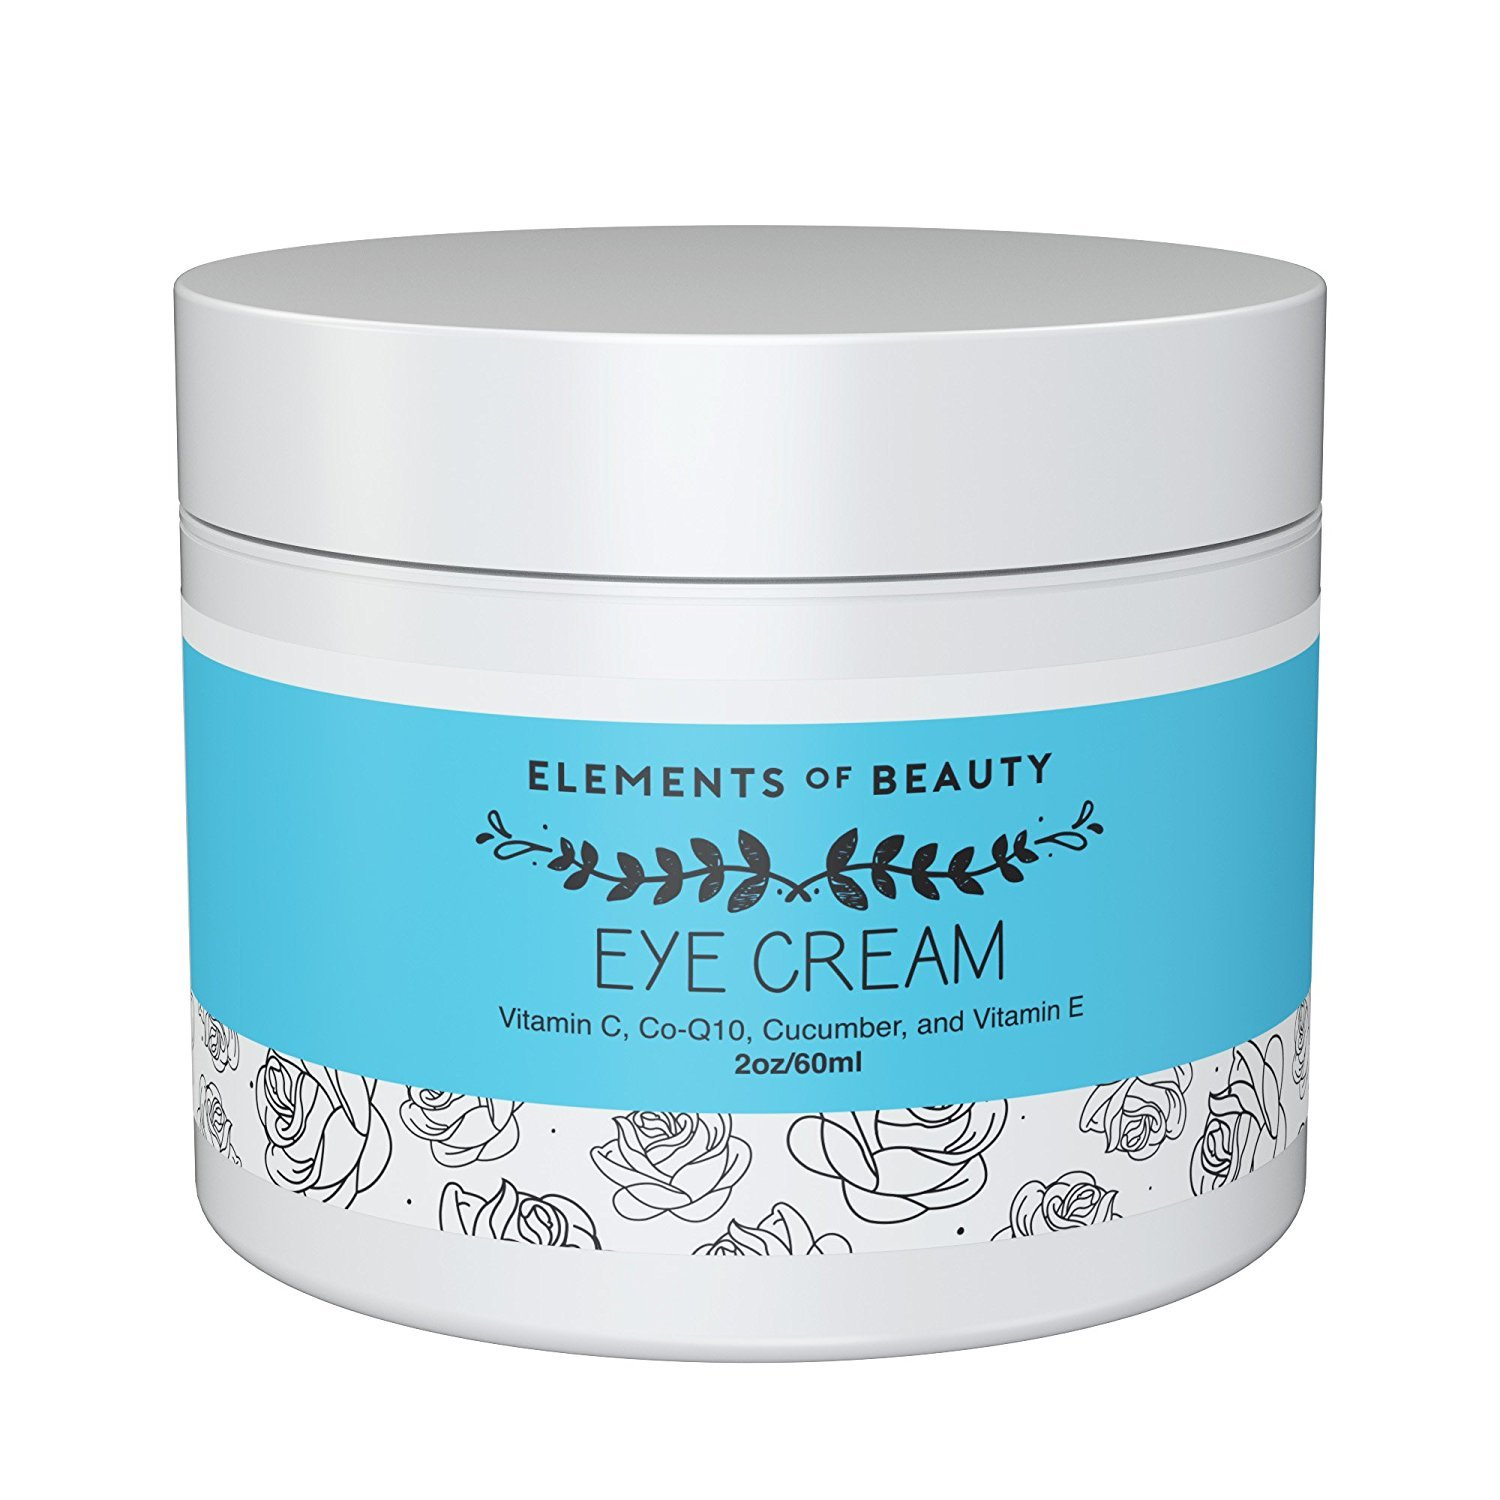 Dark Circle Eye Cream by Elements of Beauty (2 oz) - Anti-Wrinkle Eye Cream Fights Dark Circles Under Eyes and Crow's Feet - Naturally Reduces Puffiness and Bags - With Vitamin C, CoQ10 and Cucumber